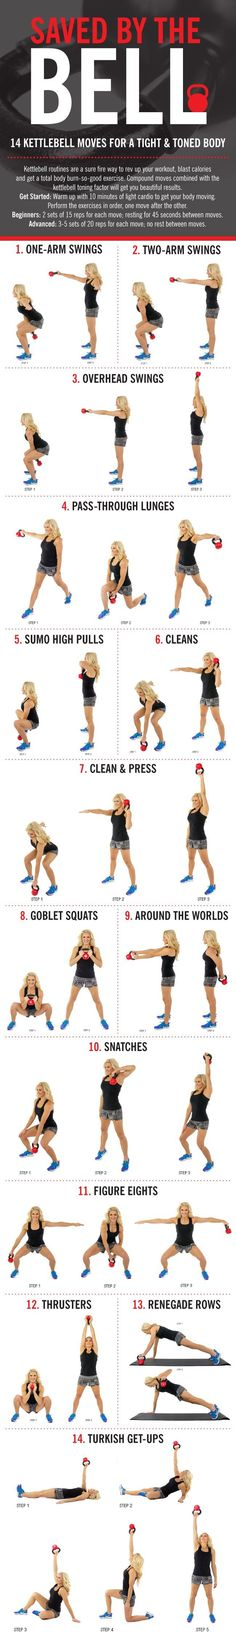 14 Kettlebell Moves for an All Over Body Calorie Torcher #strong #fitness #burnbabyburn